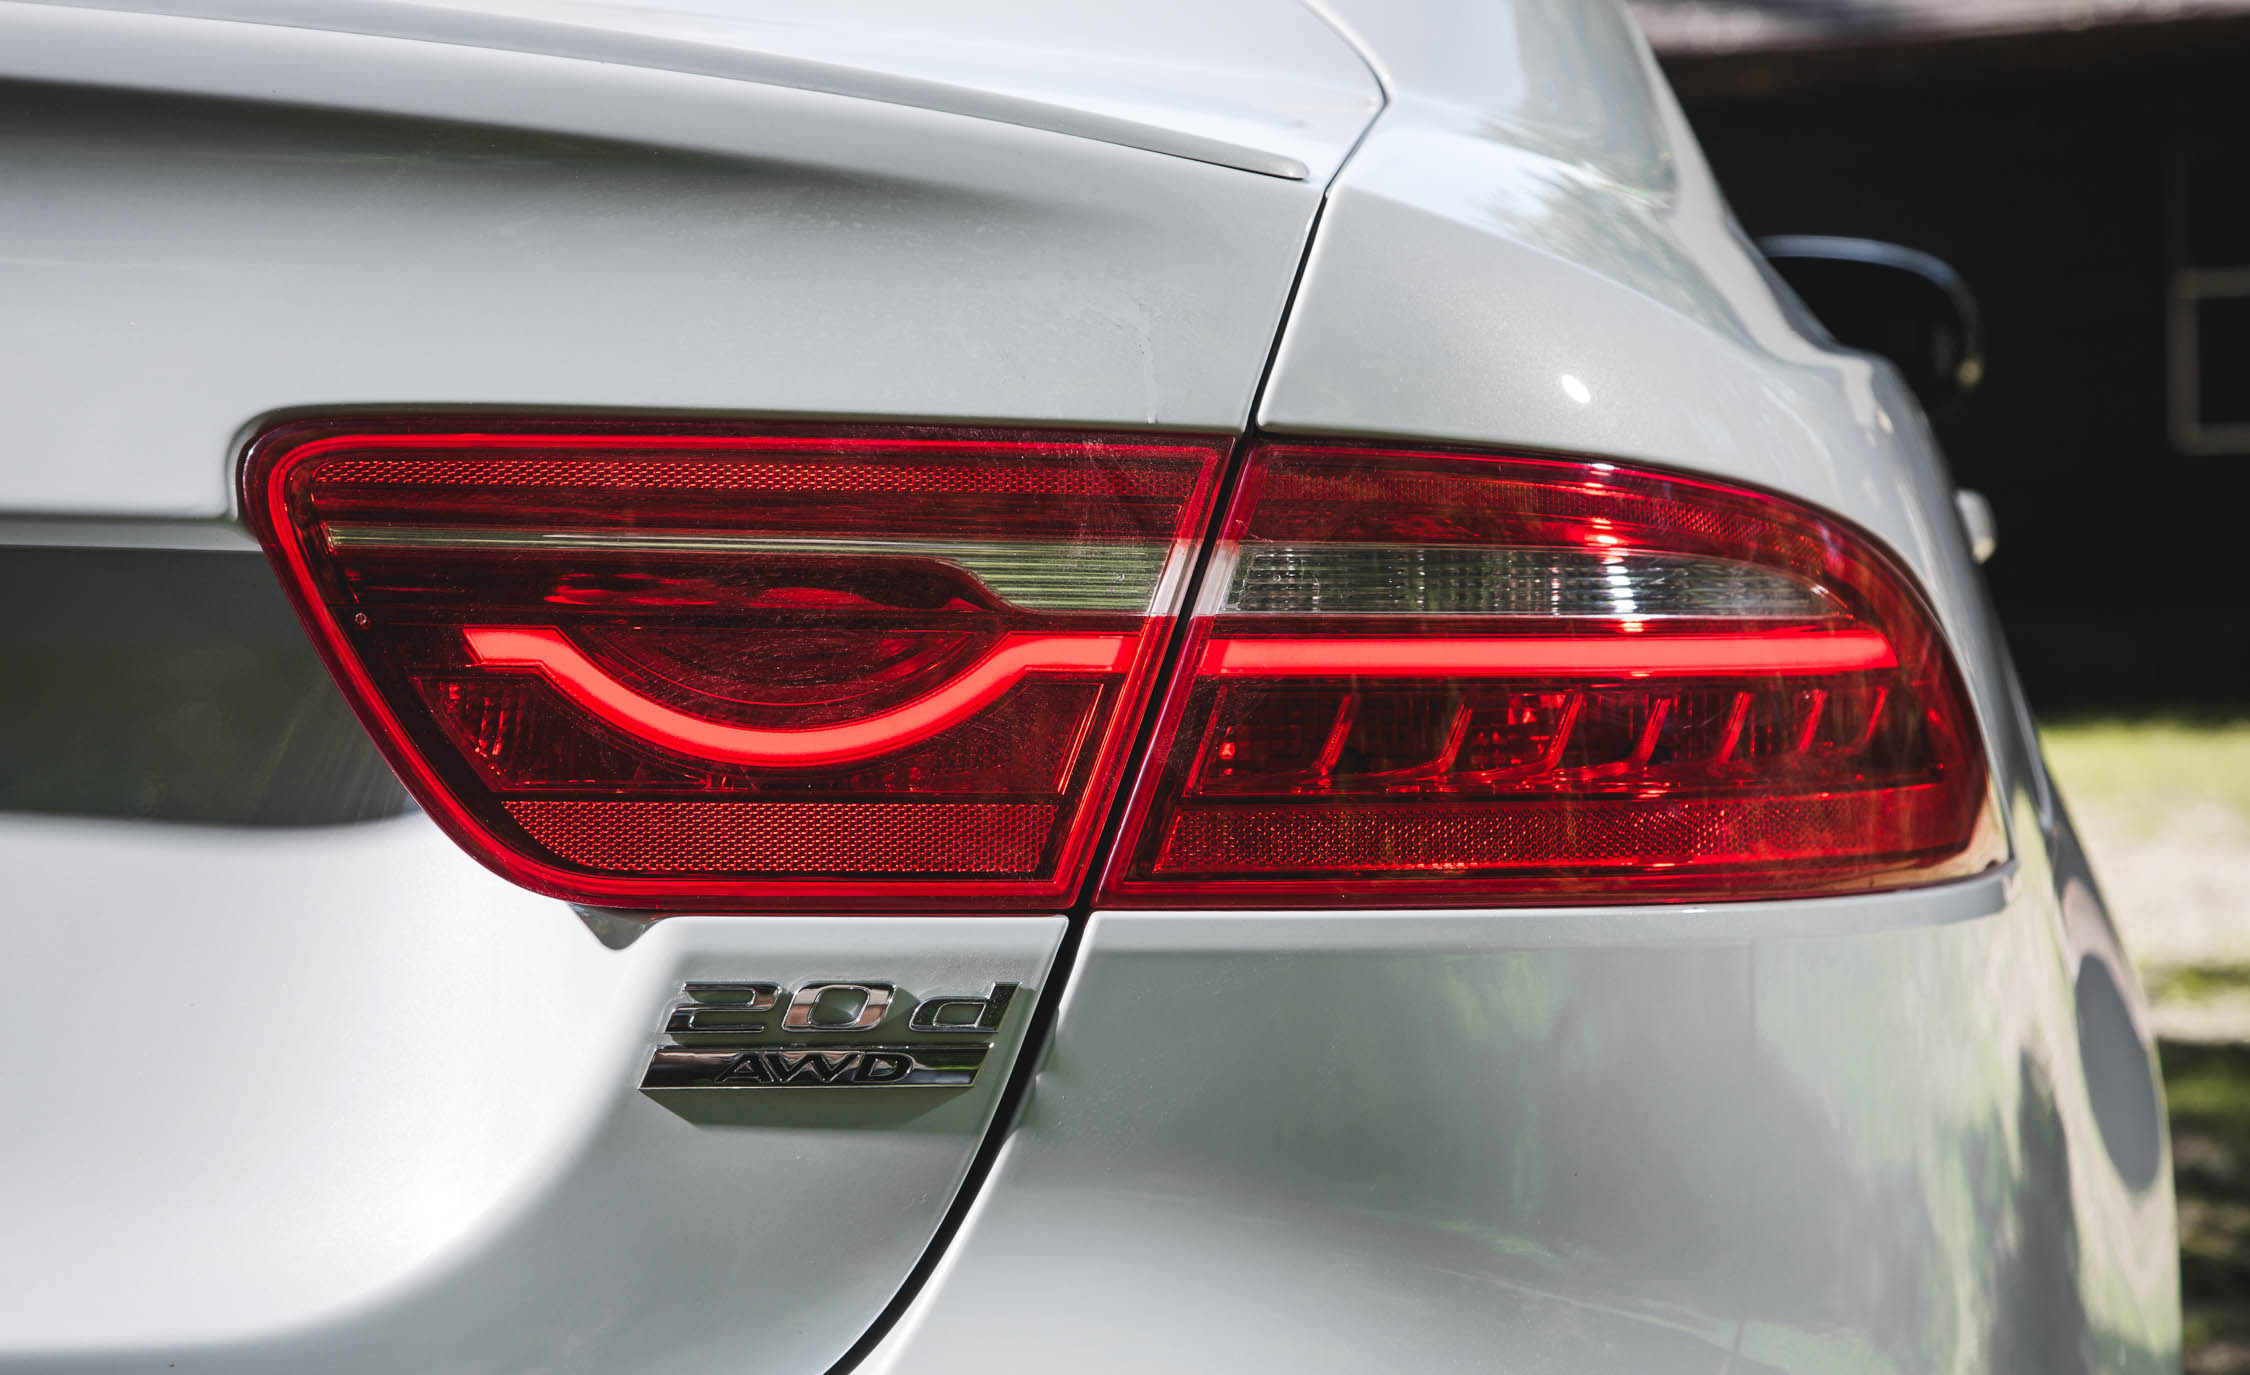 2017 Jaguar Xe White Exterior View Taillight Right Side (View 3 of 32)